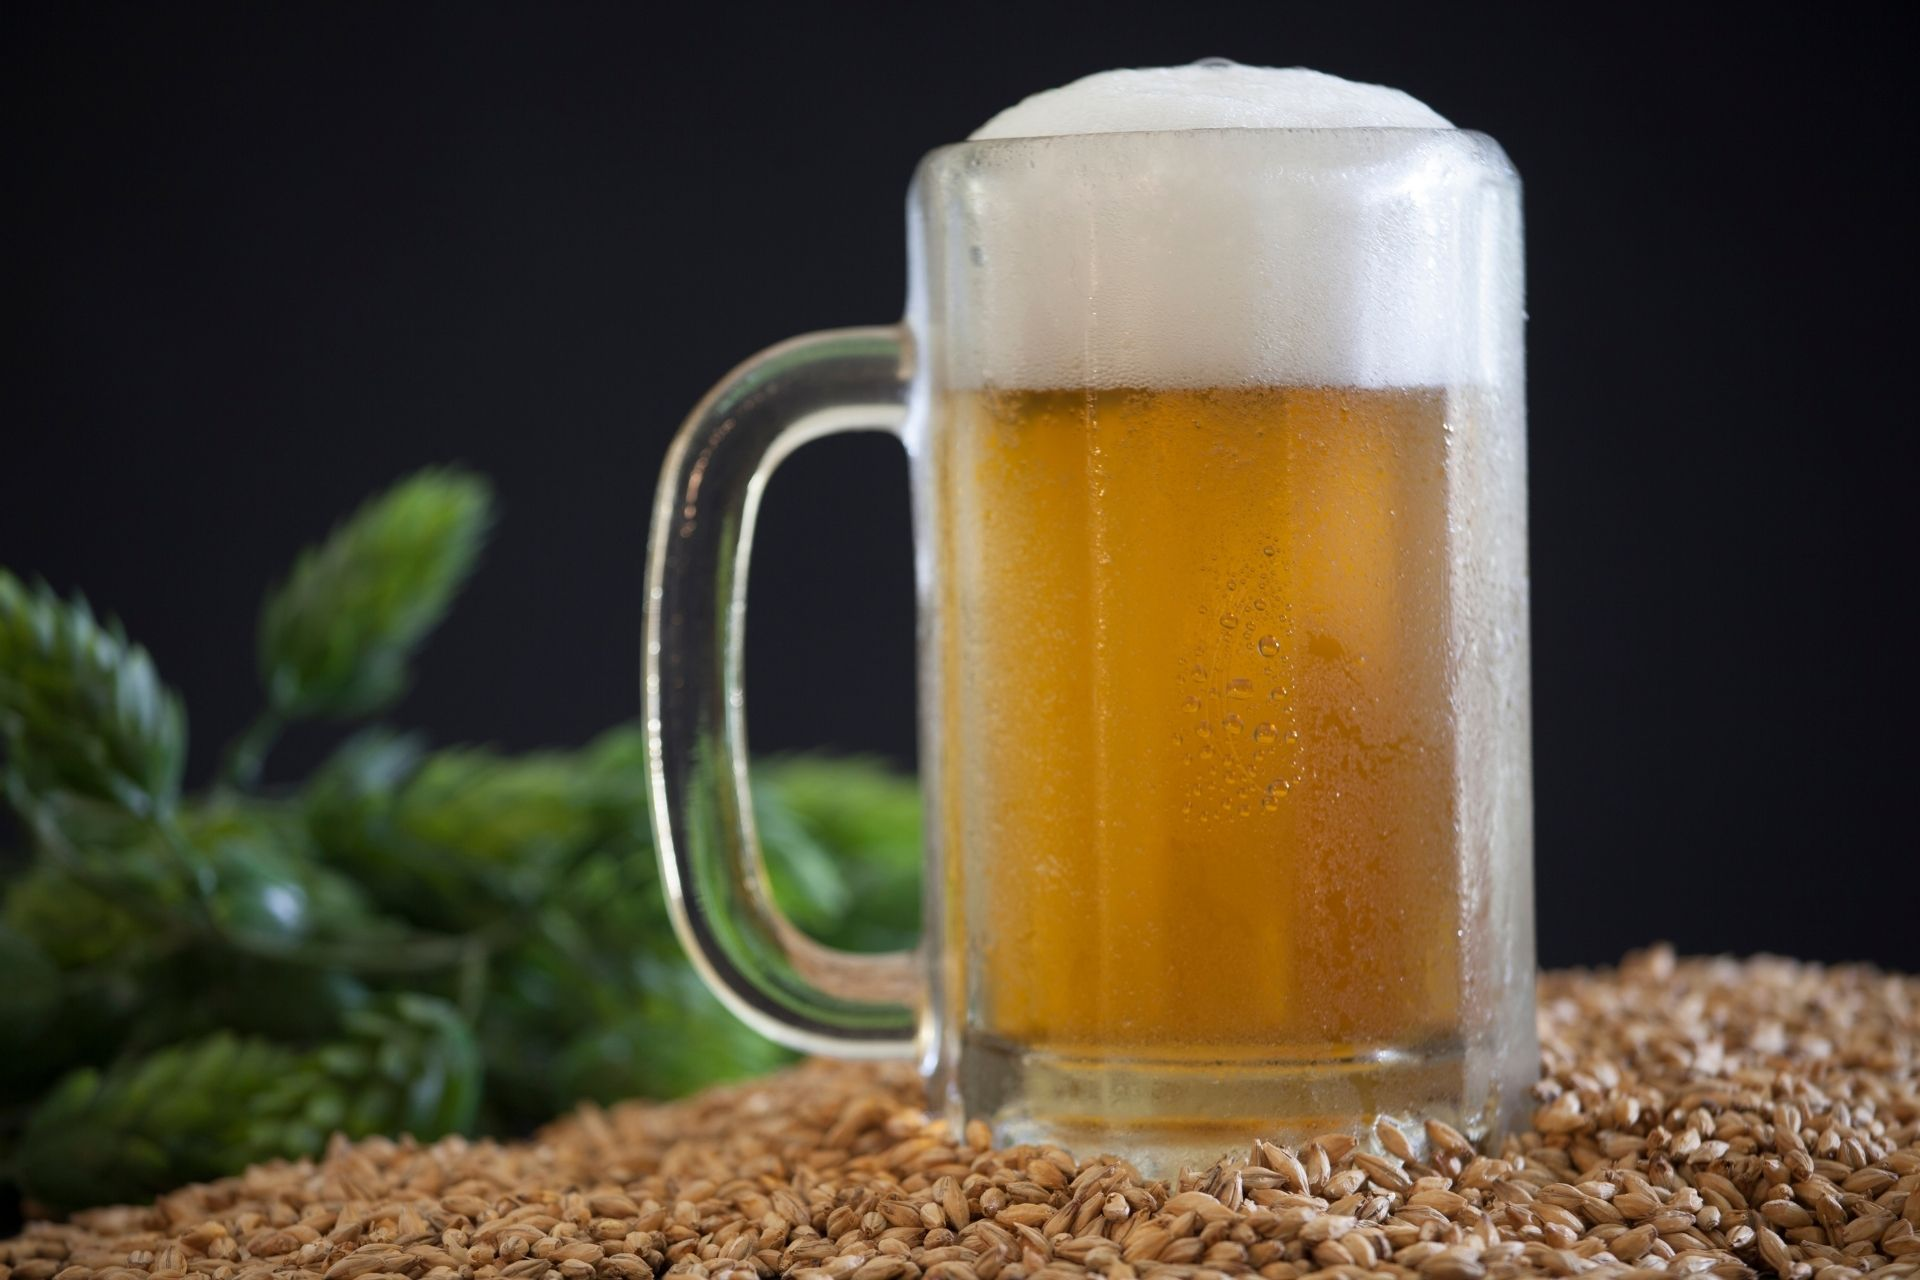 What Is The Difference Between a Pilsner and a Lager?